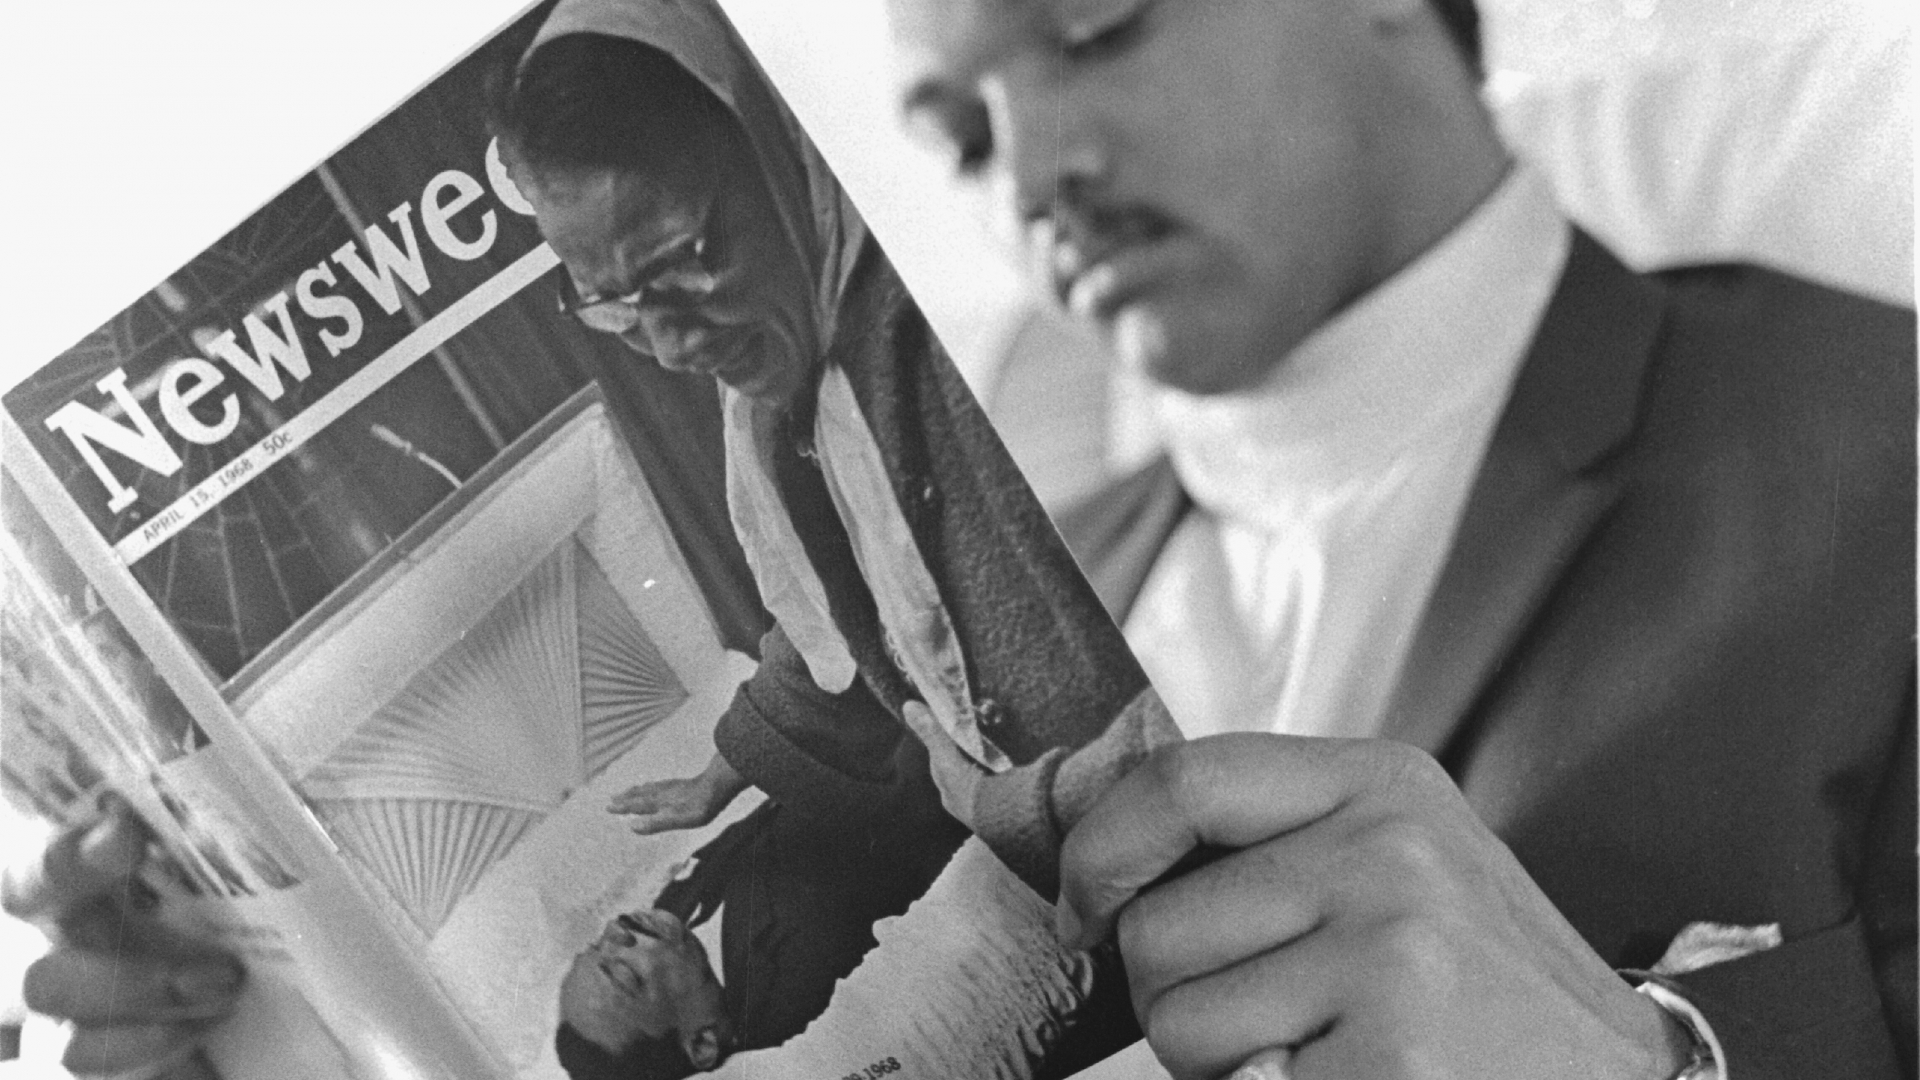 Jesse Jackson takes a moment to read a copy of Newsweek magazine, with a cover showing a mourner passing by the body of the recently assassinated Dr. Martin Luther King, Jr., during his flight from Atlanta to Memphis to carry out the Final March, 1968. (Credit: Robert Abbott Sengstacke/Getty Images)